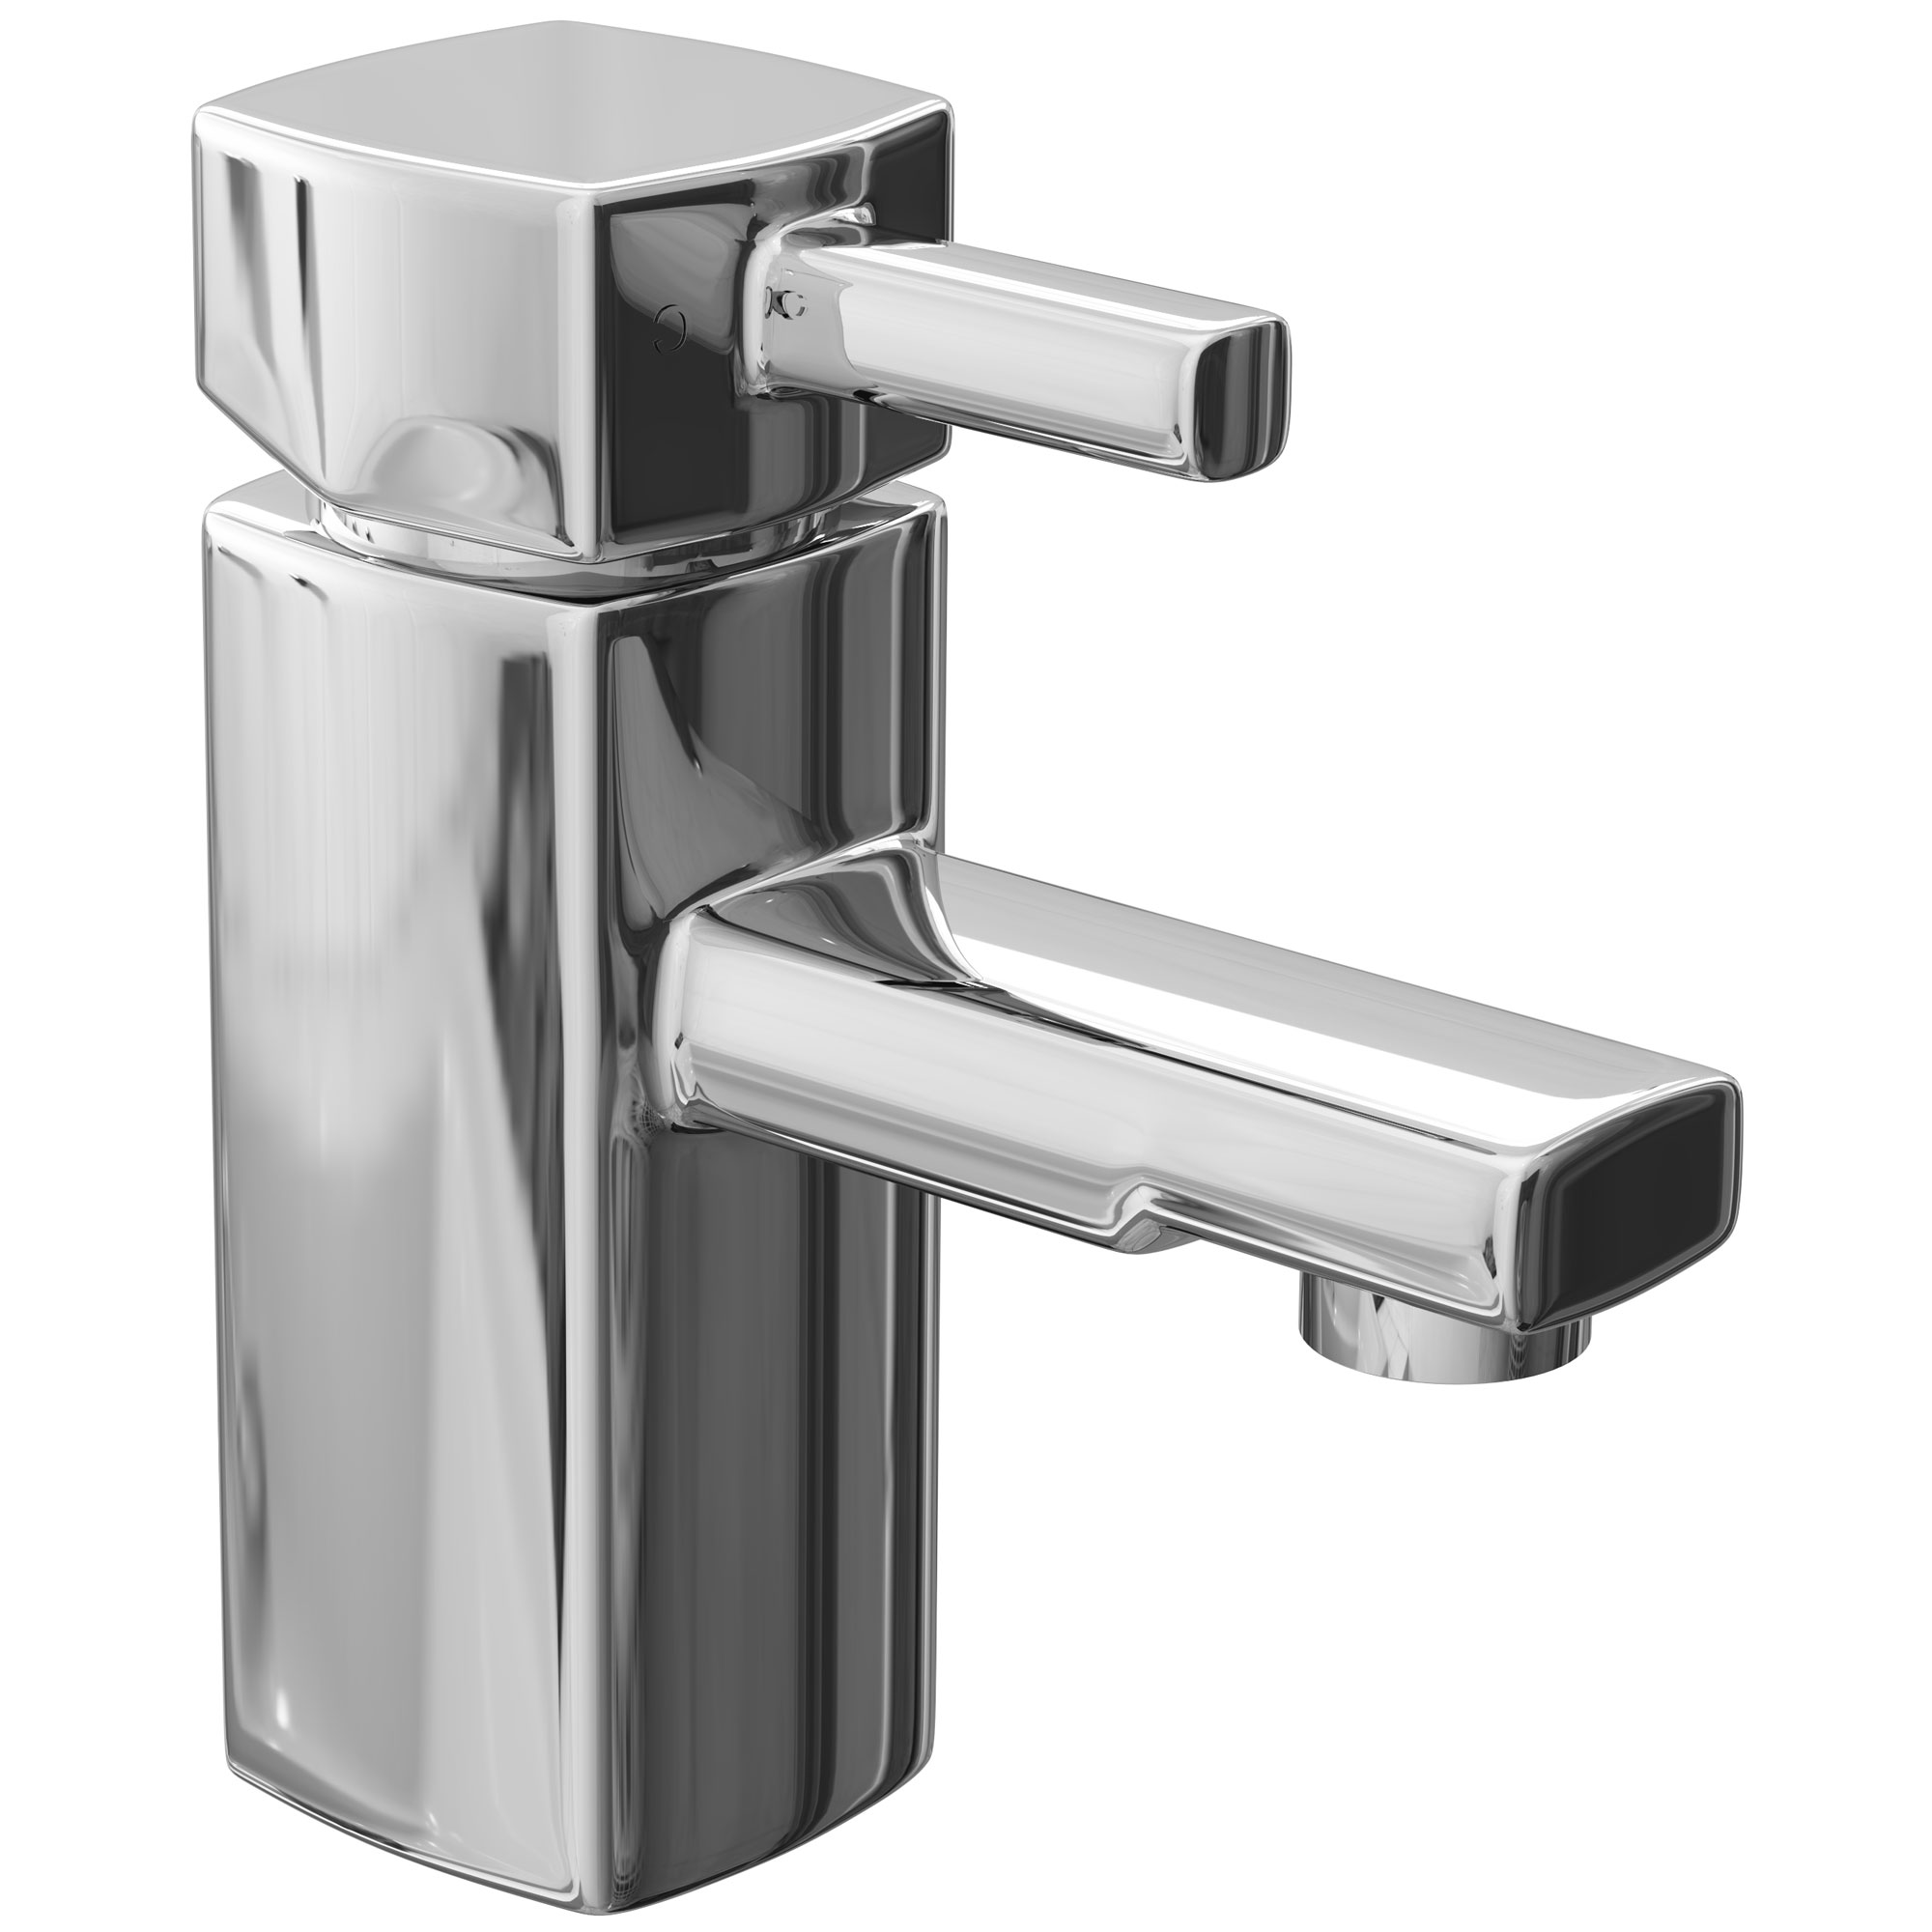 Cali Nero Mono Basin Mixer Tap Deck Mounted with Click Clack Waste - Chrome